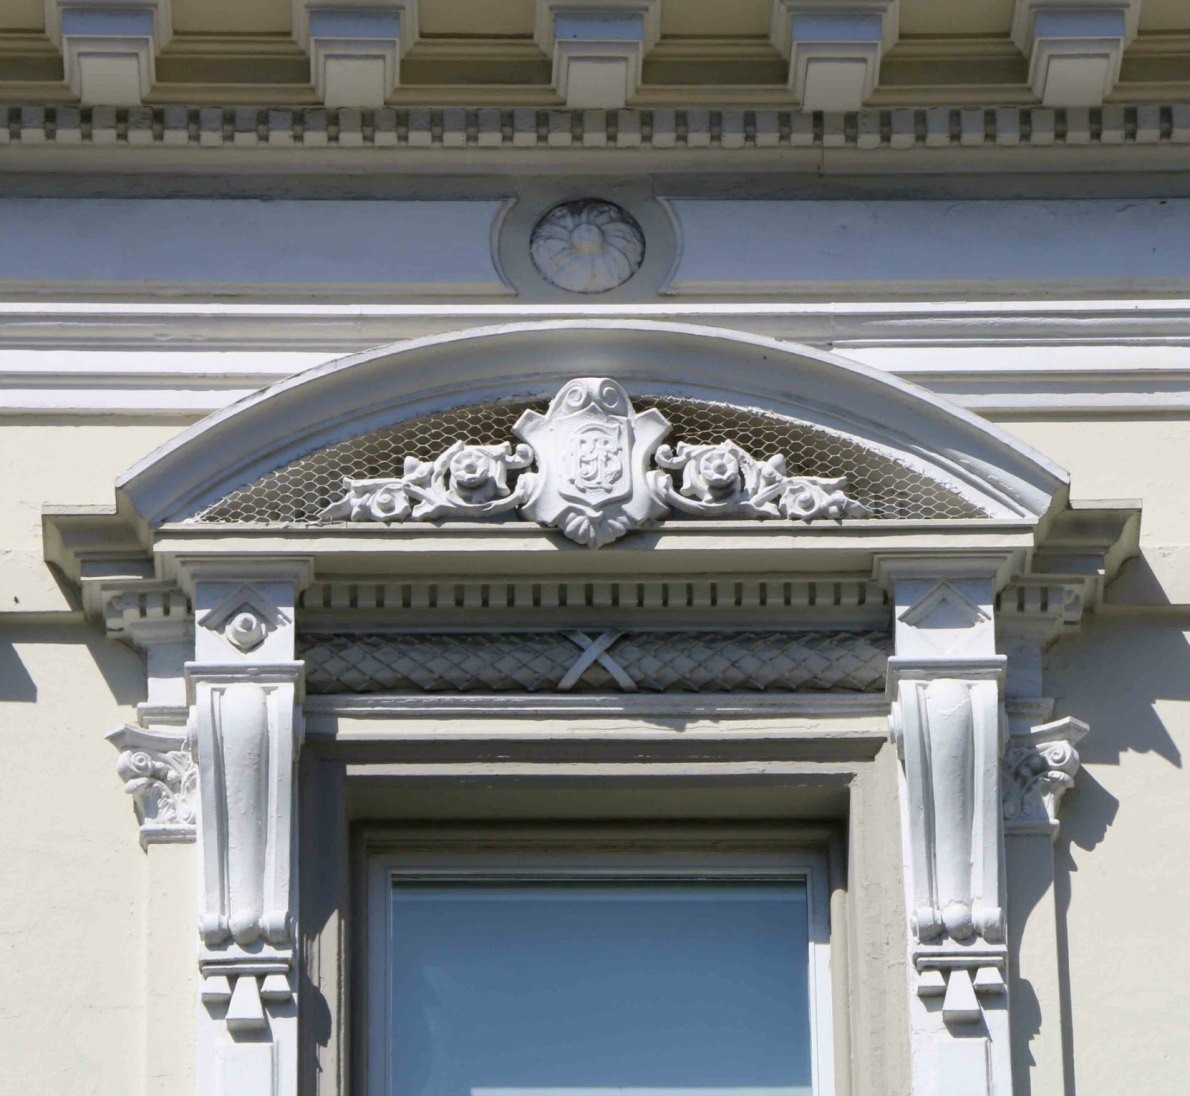 Decorative architectural detail on 1022 Government Street, built in 1885 by architect Warren H. Williams, who also designed Craigdarroch Castle.